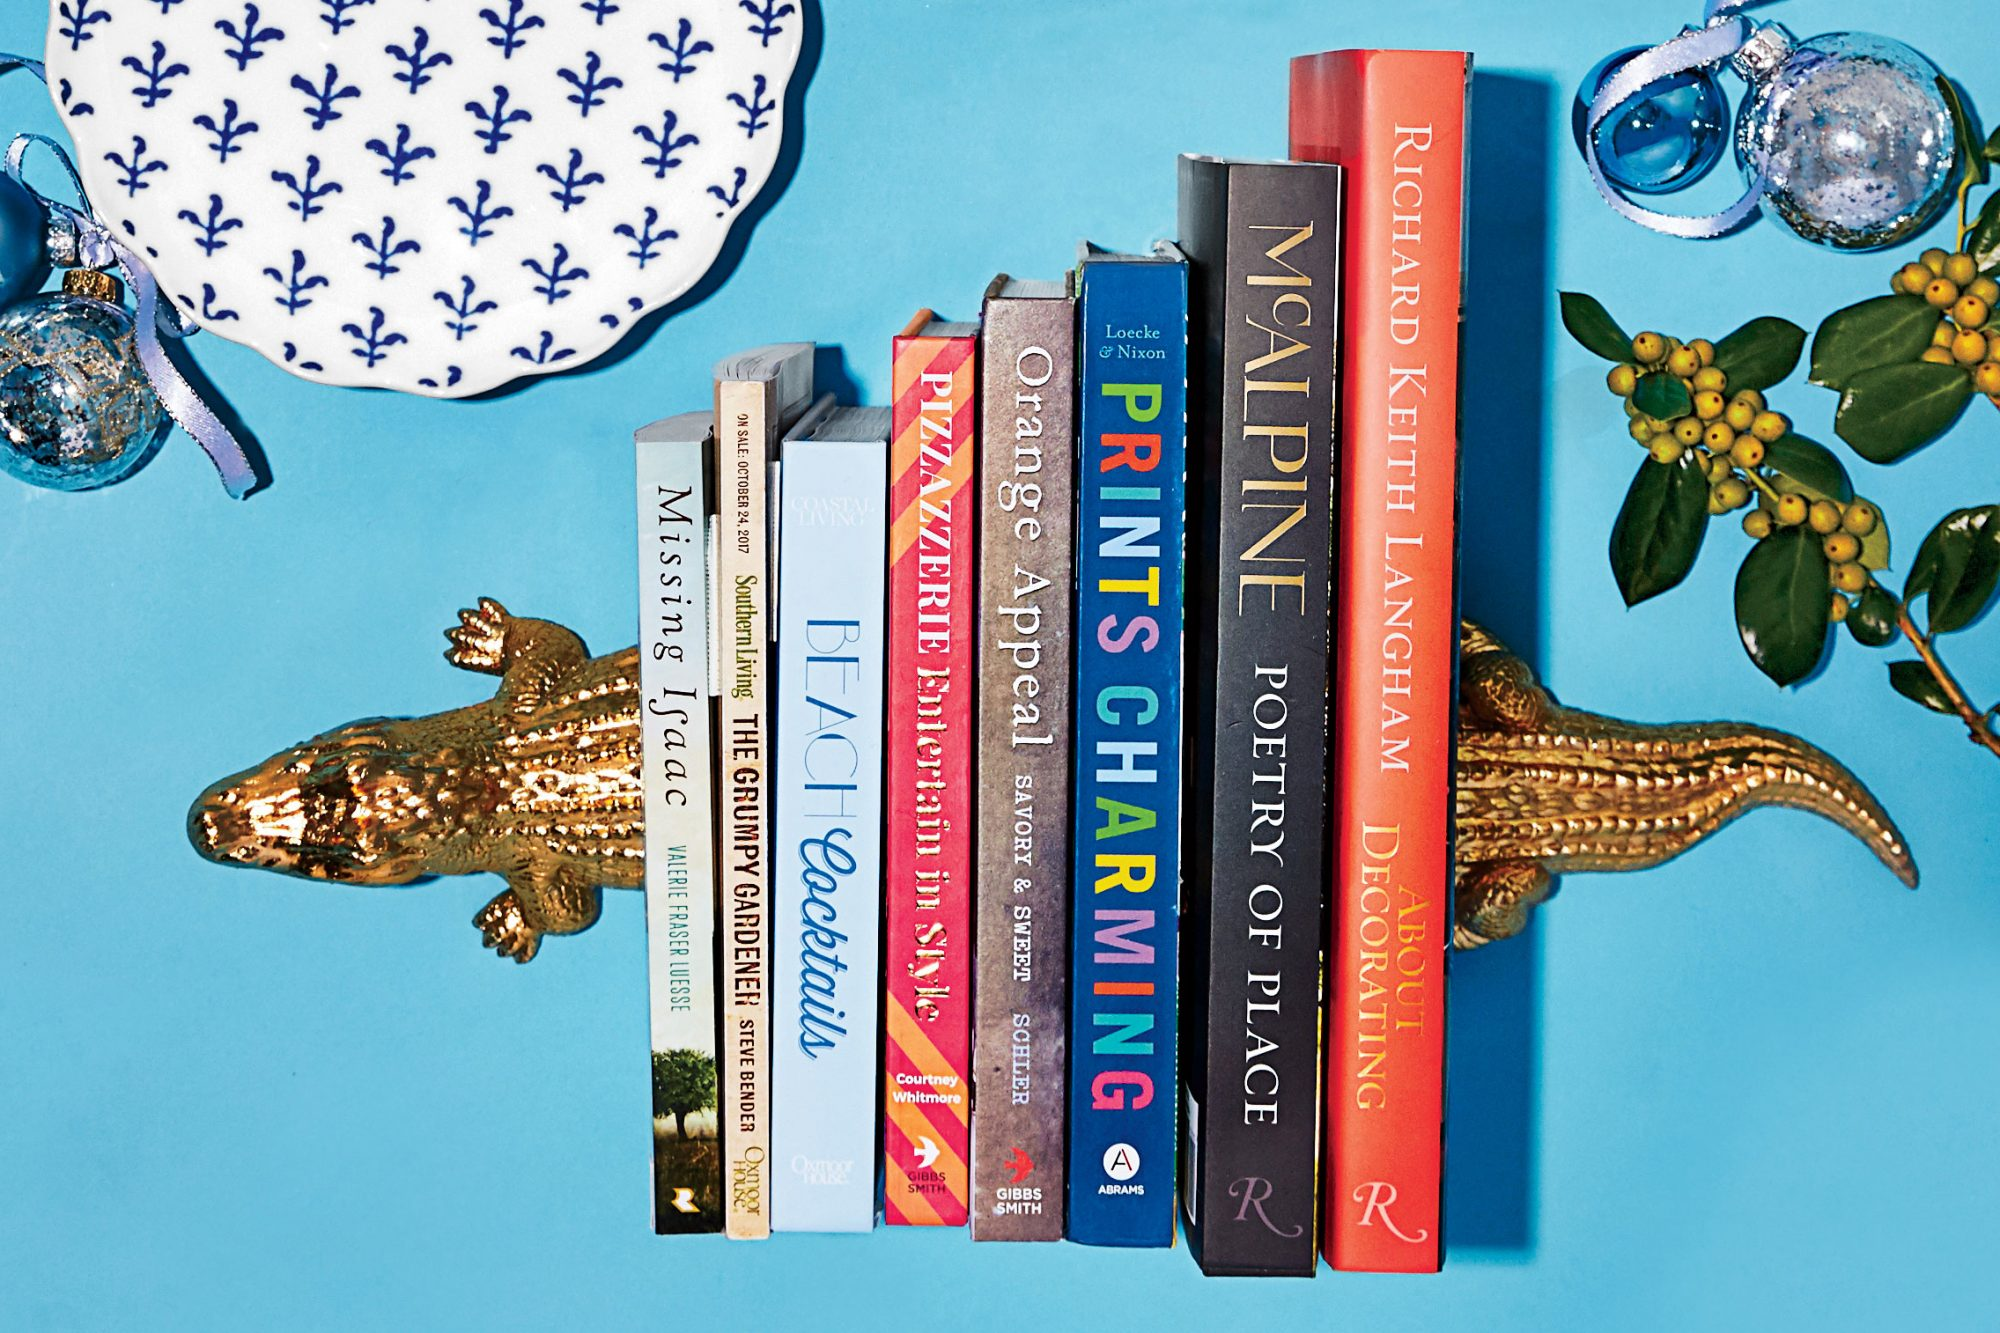 Alligator Bookends and Great Reads